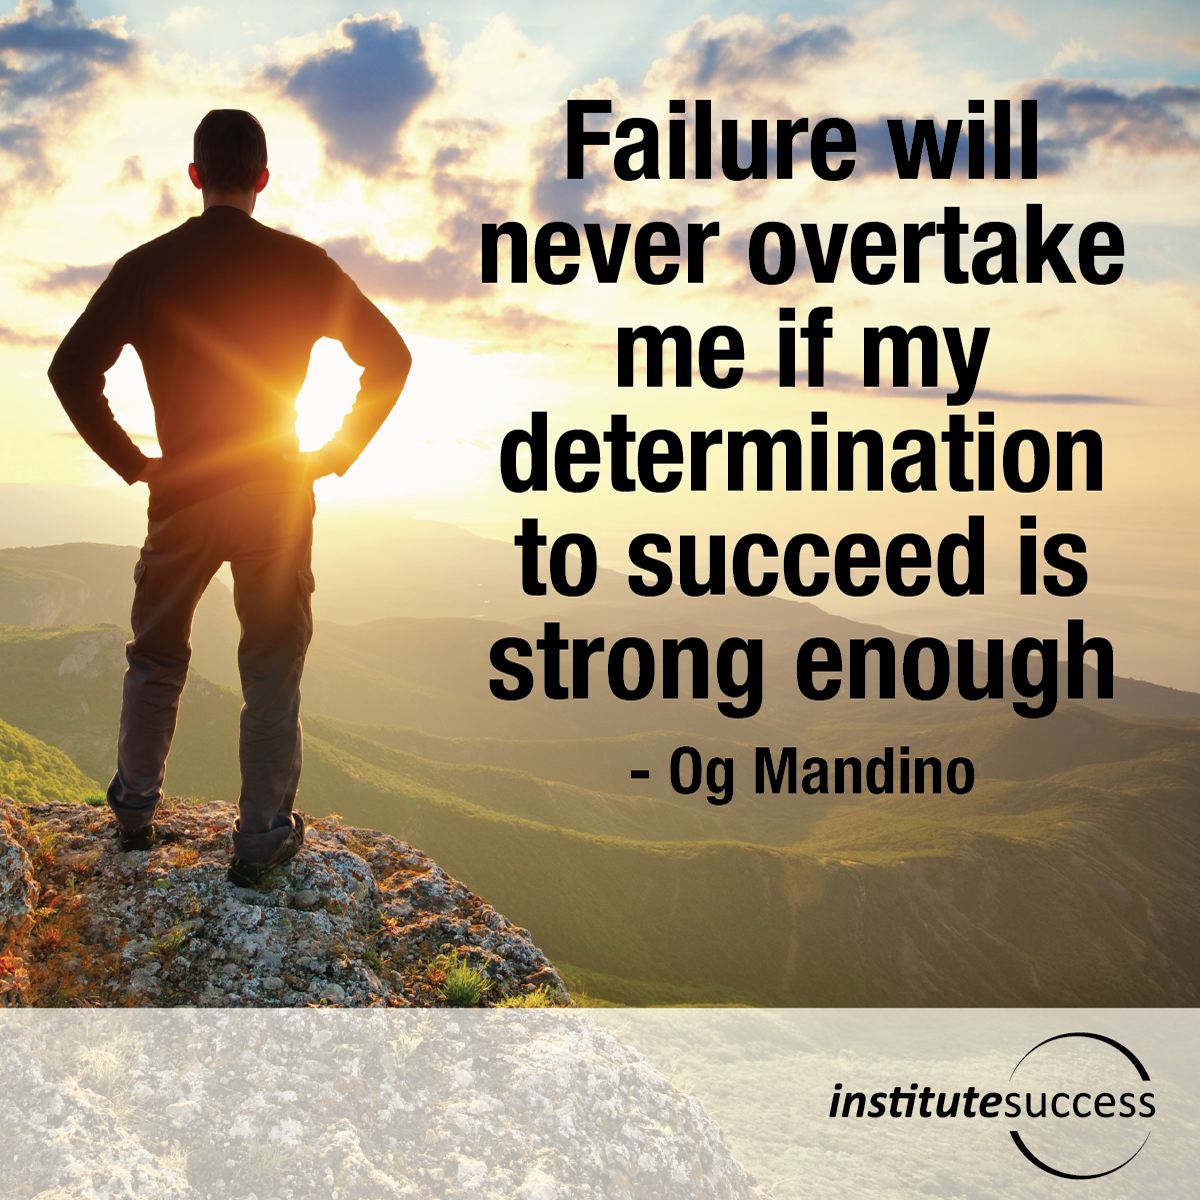 Og Mandino Quotes: Failure Will Never Overtake Me If My Determination To